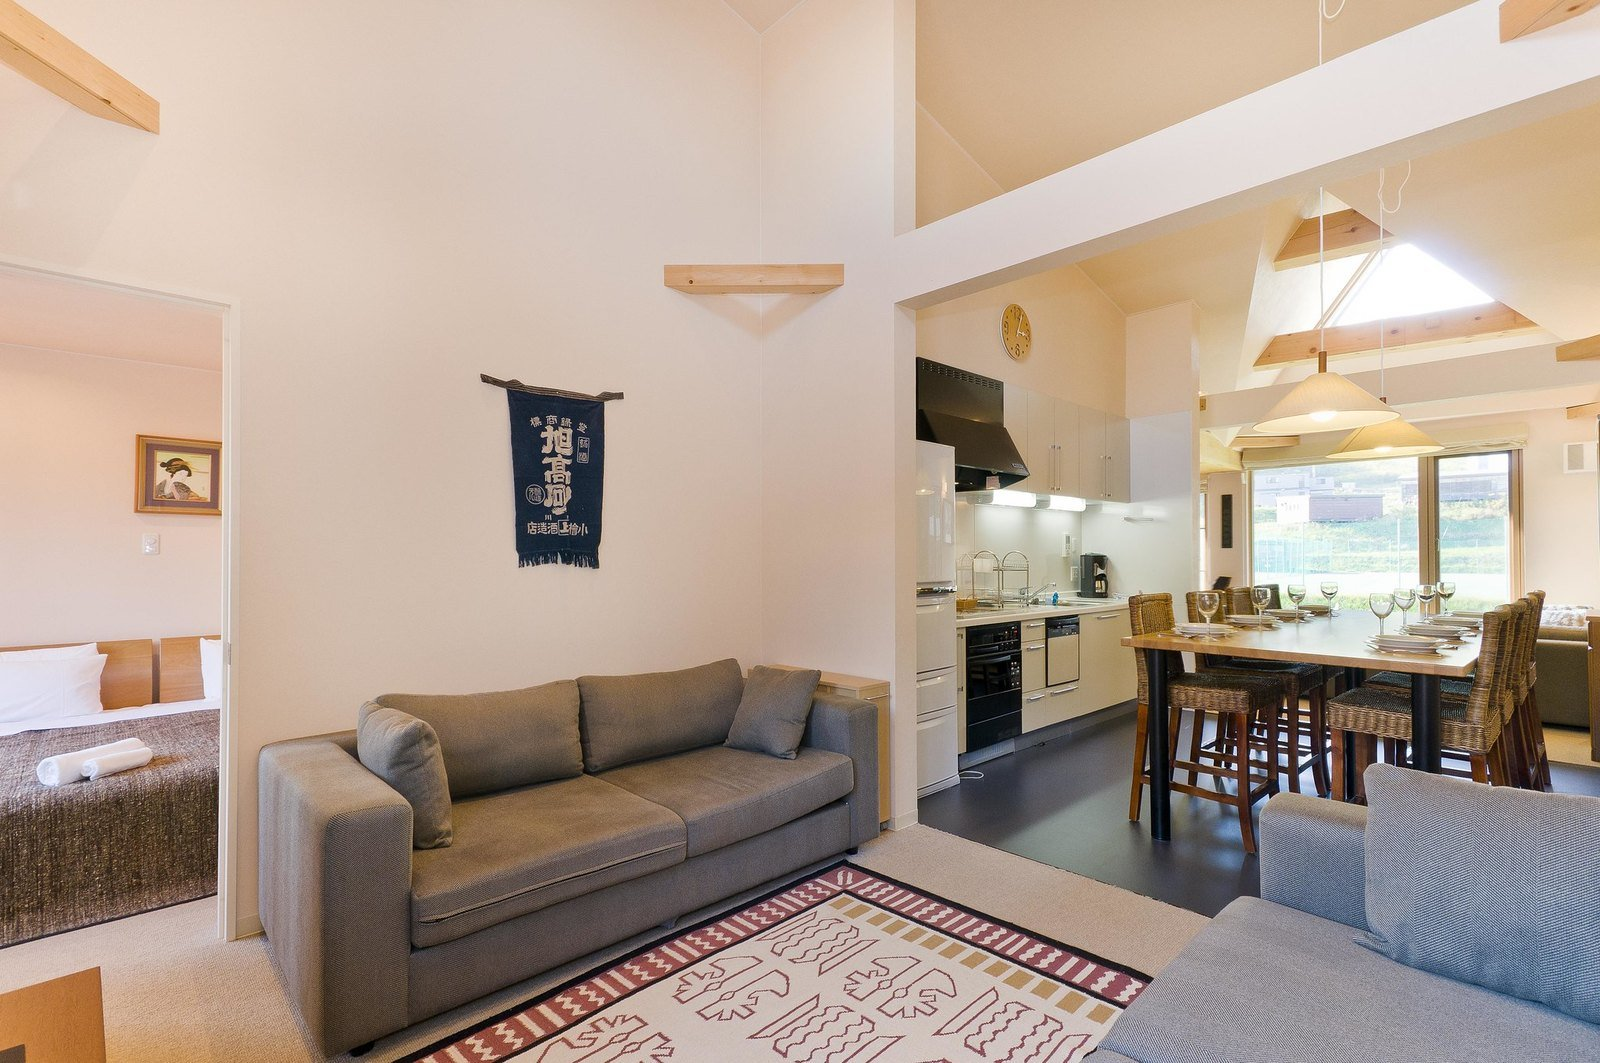 A 4 bedroom townhouse in Gondola Chalets, Niseko.